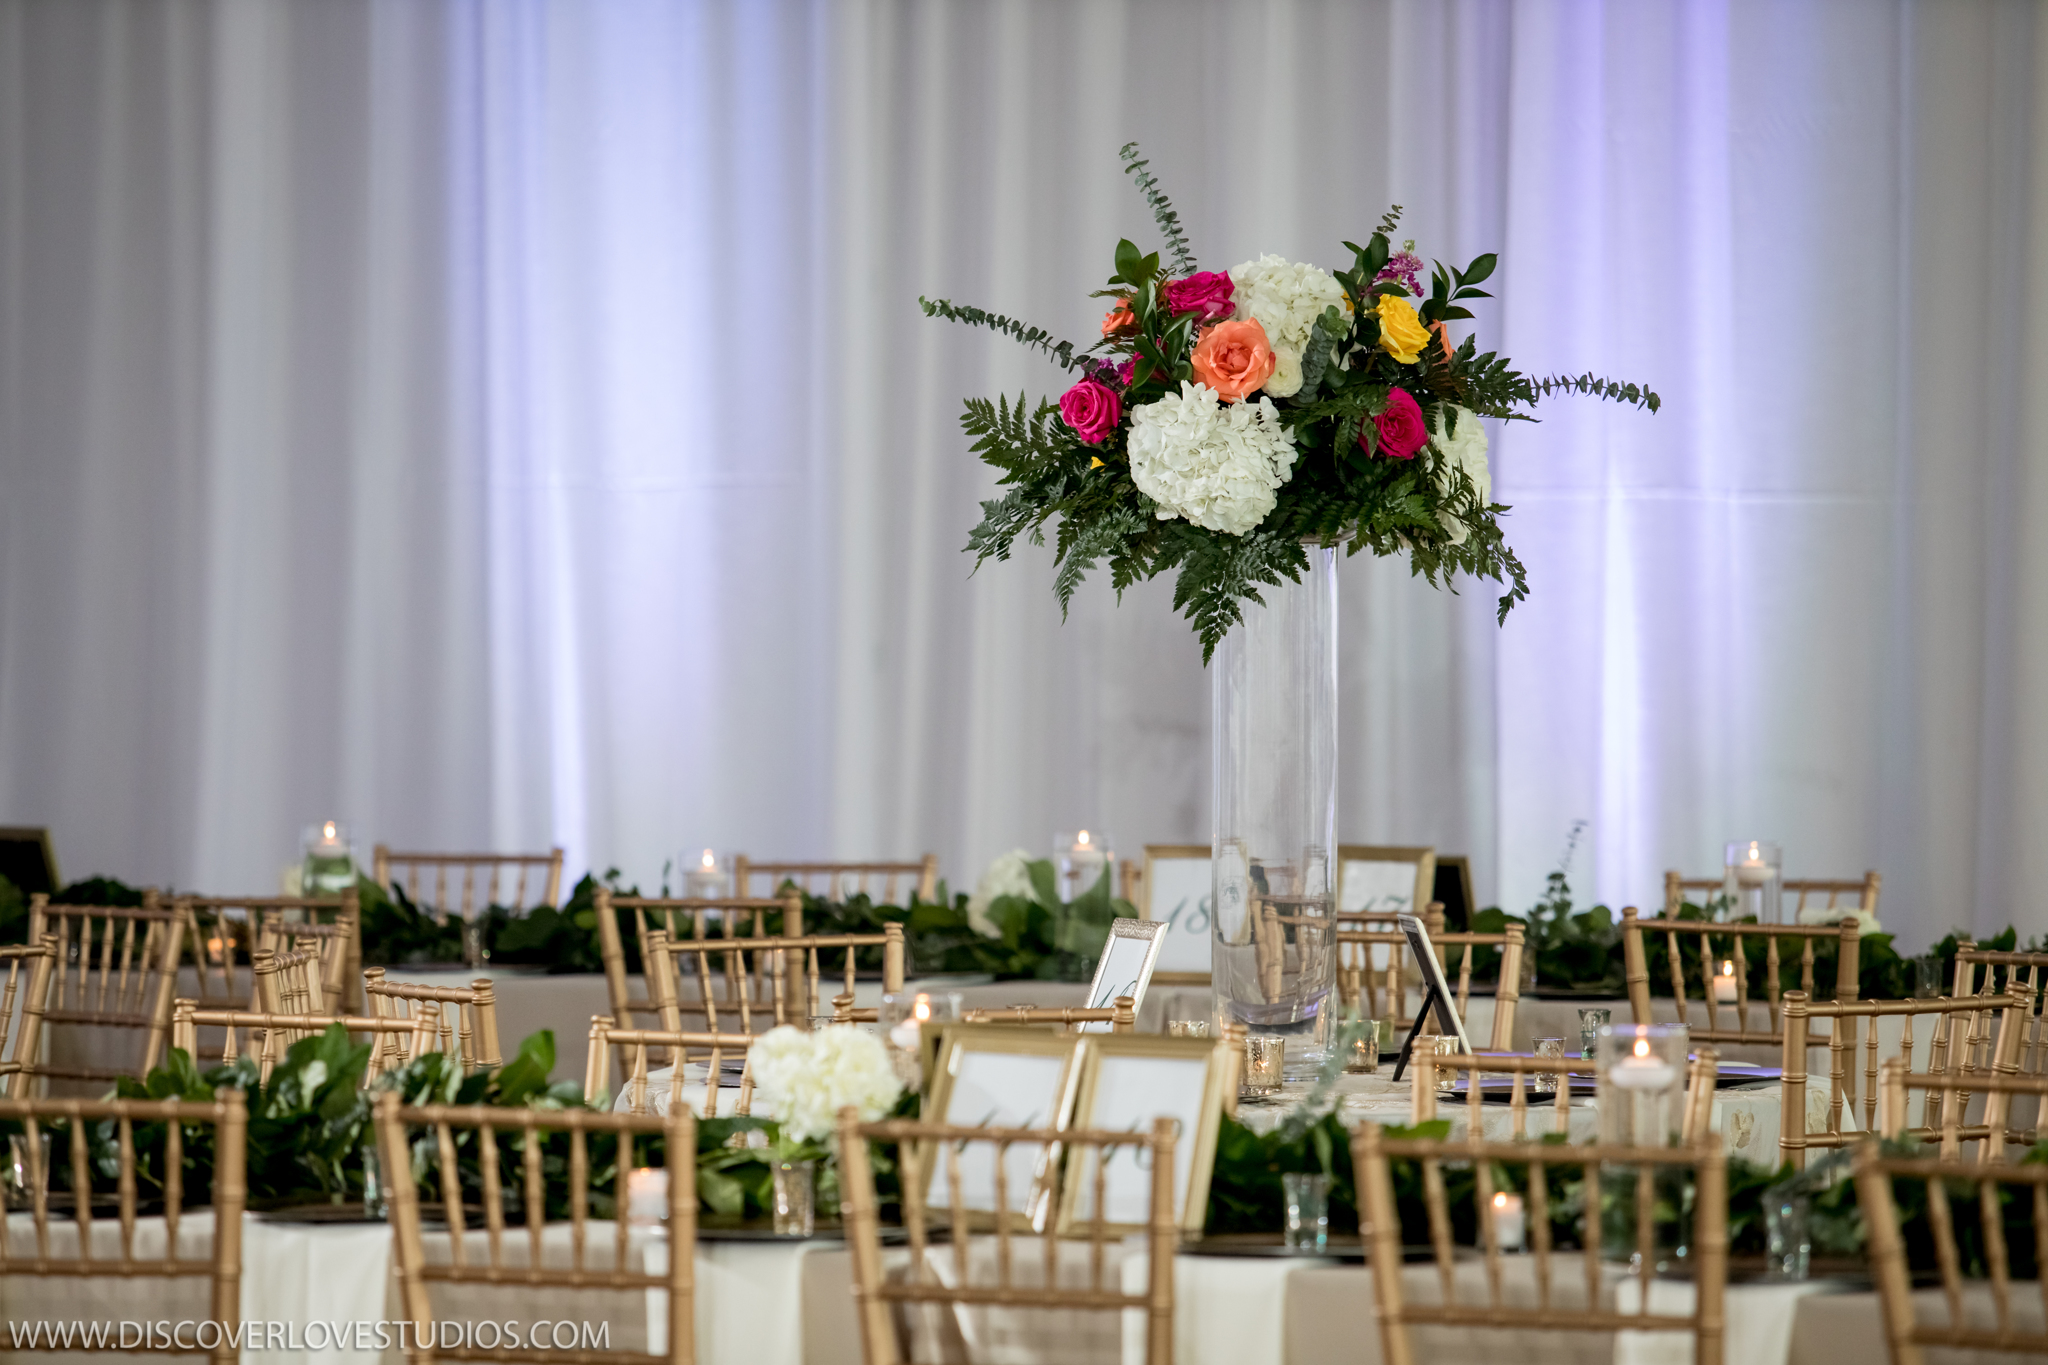 Tall centerpiece with white hydrangeas and brightly colored flowers made by Magnificent Moments Weddings and captured by Discover Love Studios